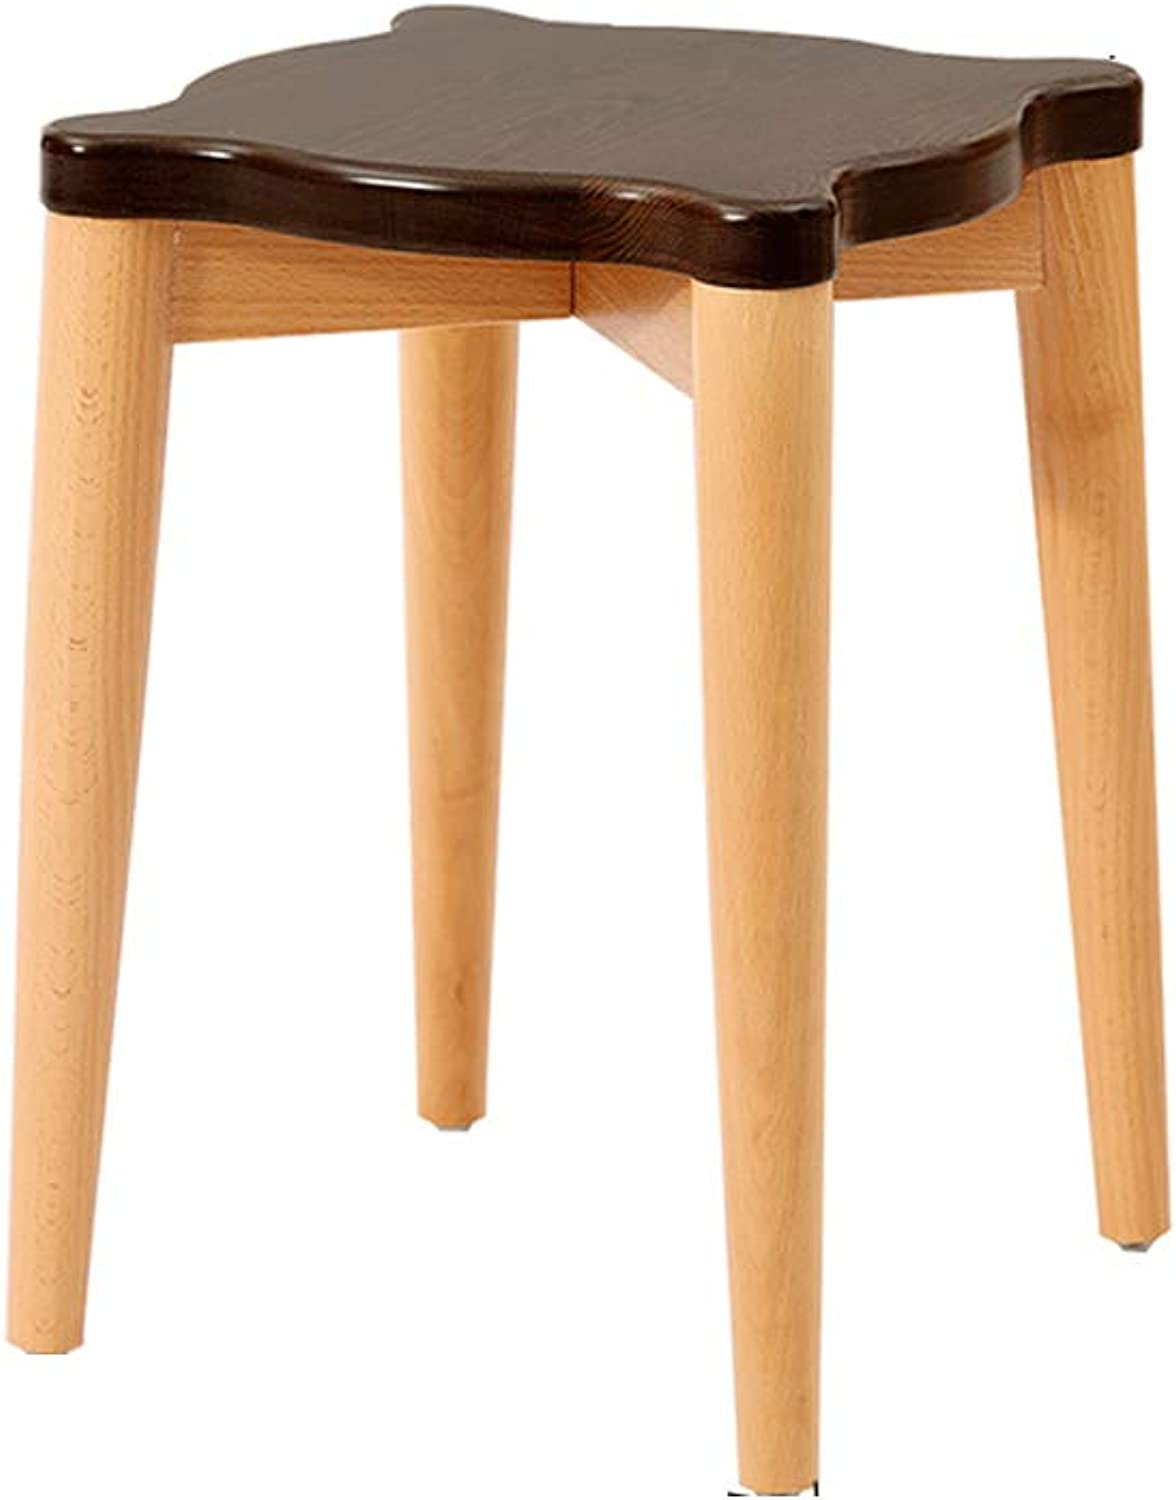 SYFO Household Simple Solid Wood Dining Table Stool Can Be Stacked Design Wear-Resistant Dressing Stool Stool (color   Brown)